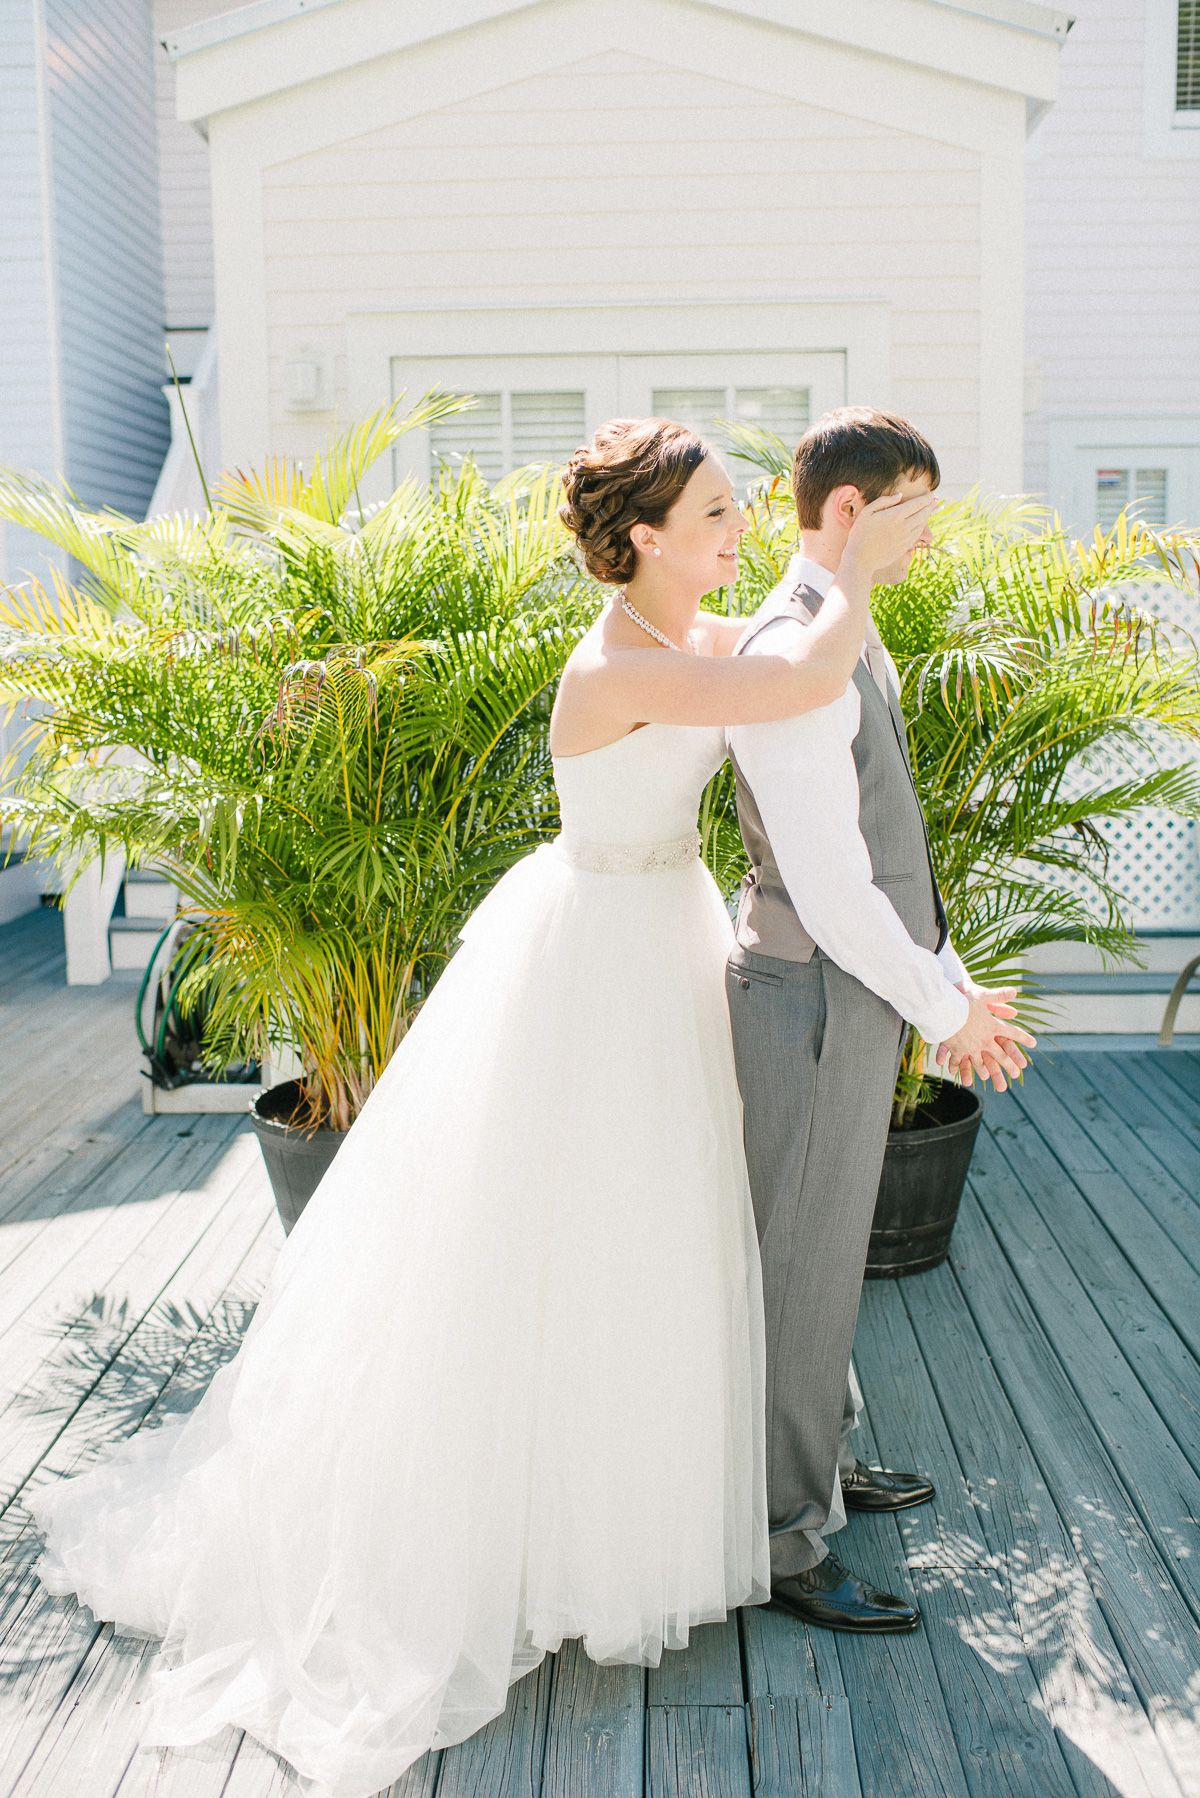 intimate wedding at Hemingway House in Key West / photo by sunglowphotography.com